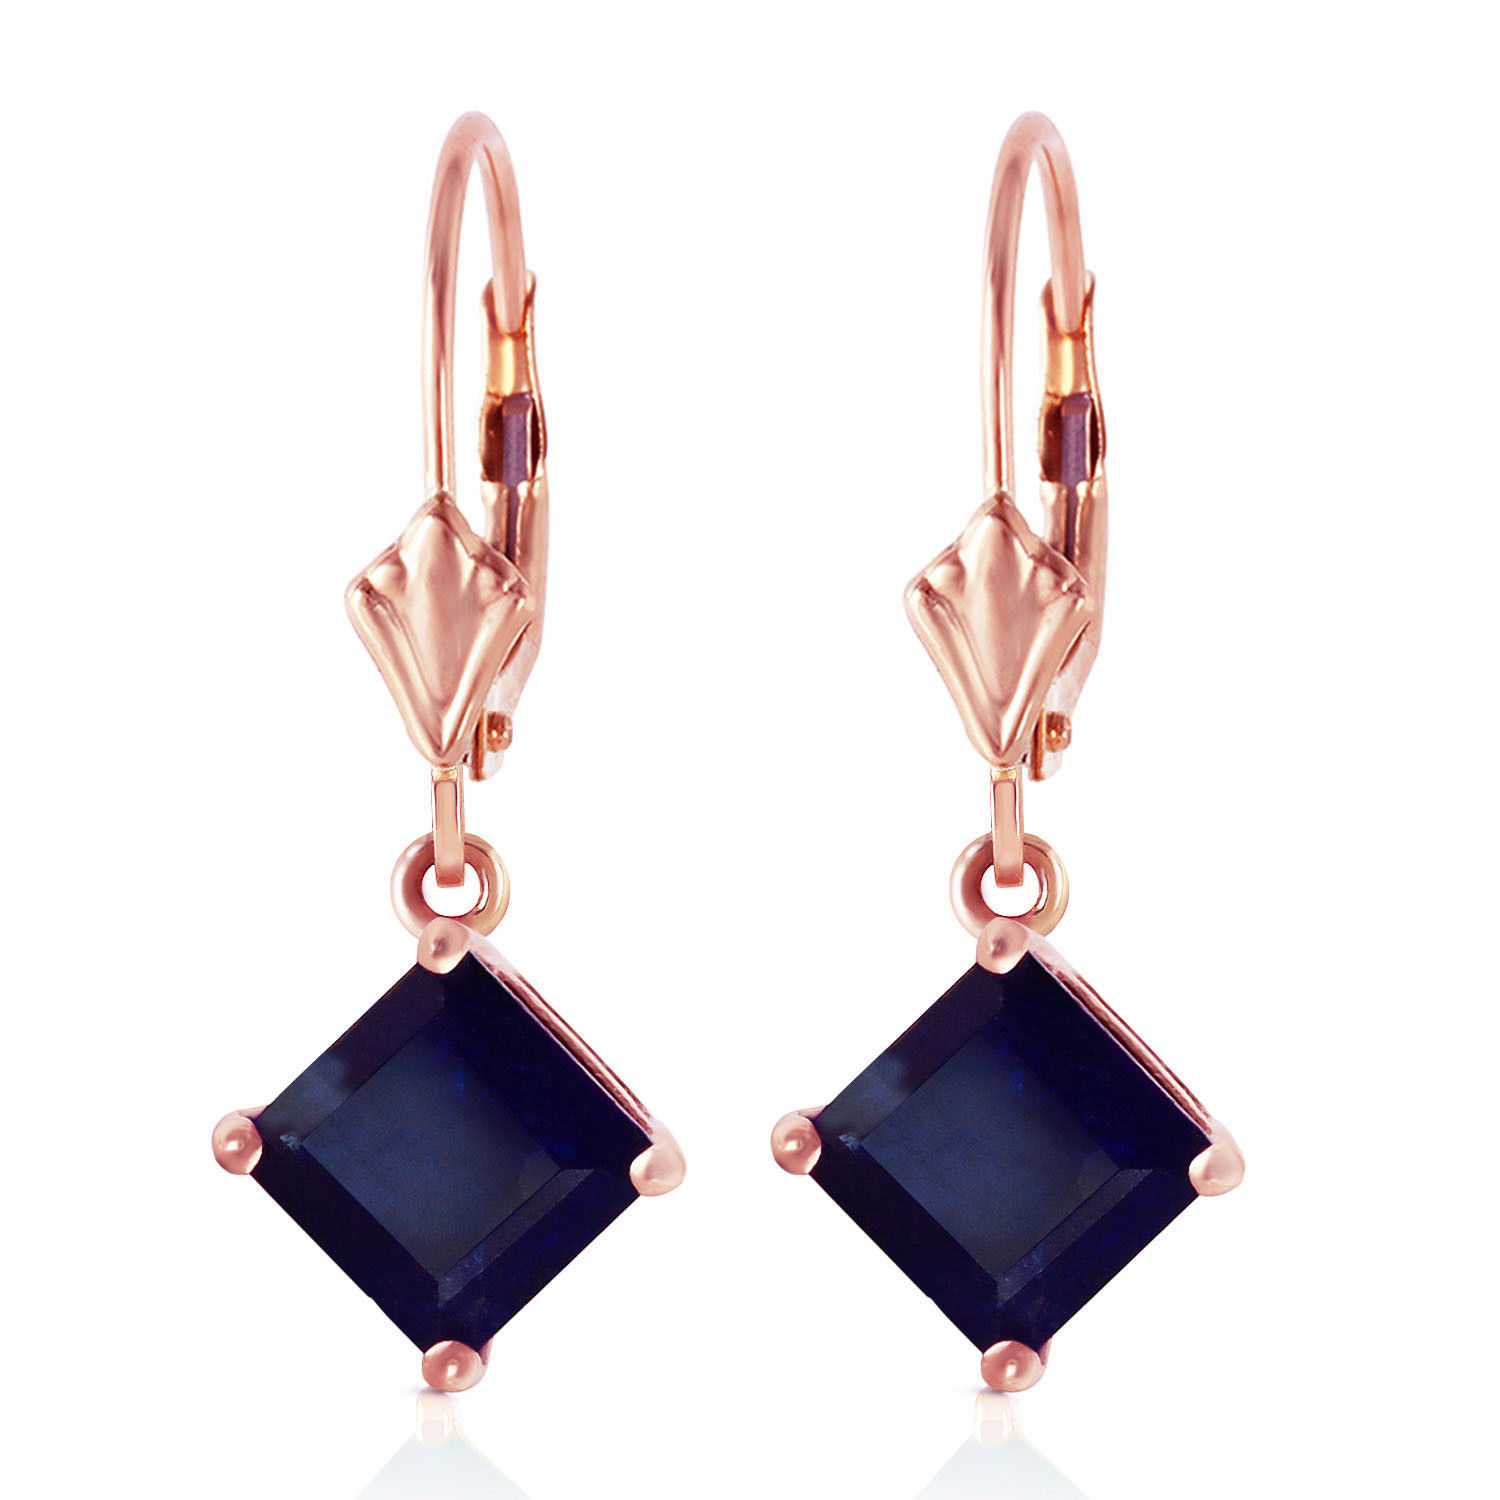 Primary image for 14K Rose Gold Women's Gorgeous Leverback Fashion Earrings w/ Natural Sapphires